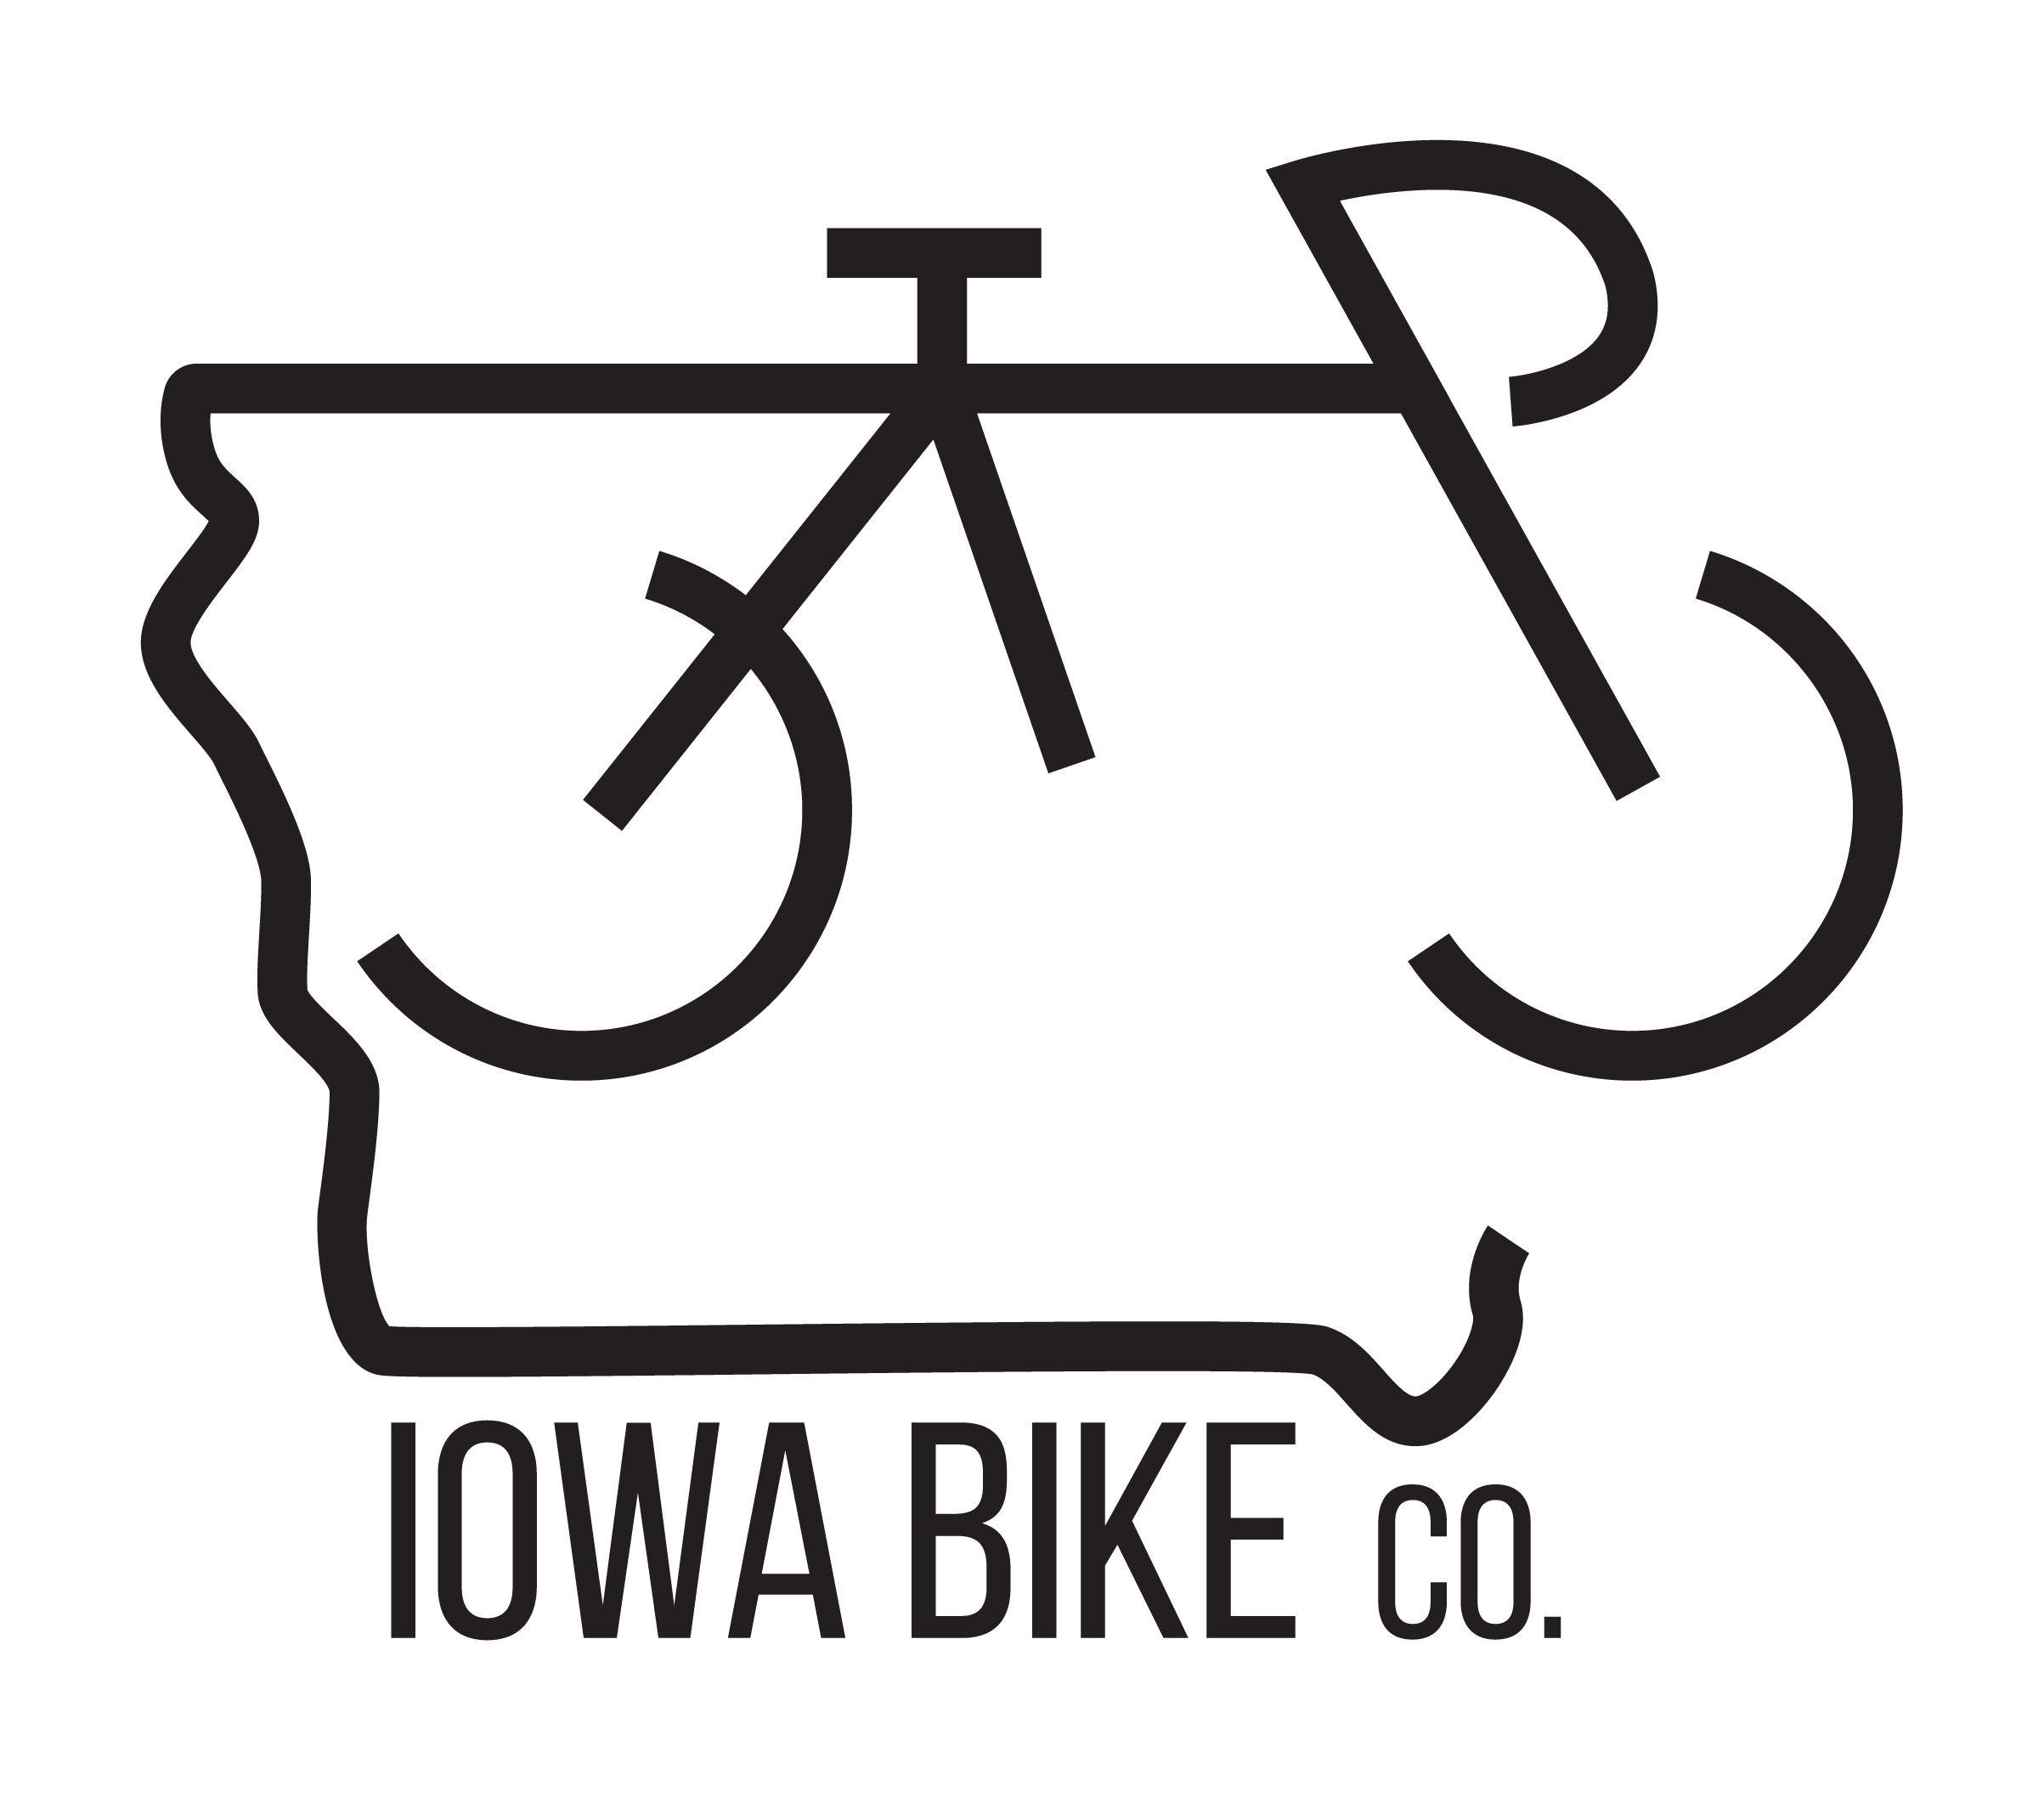 Iowa Bike Co. Logo